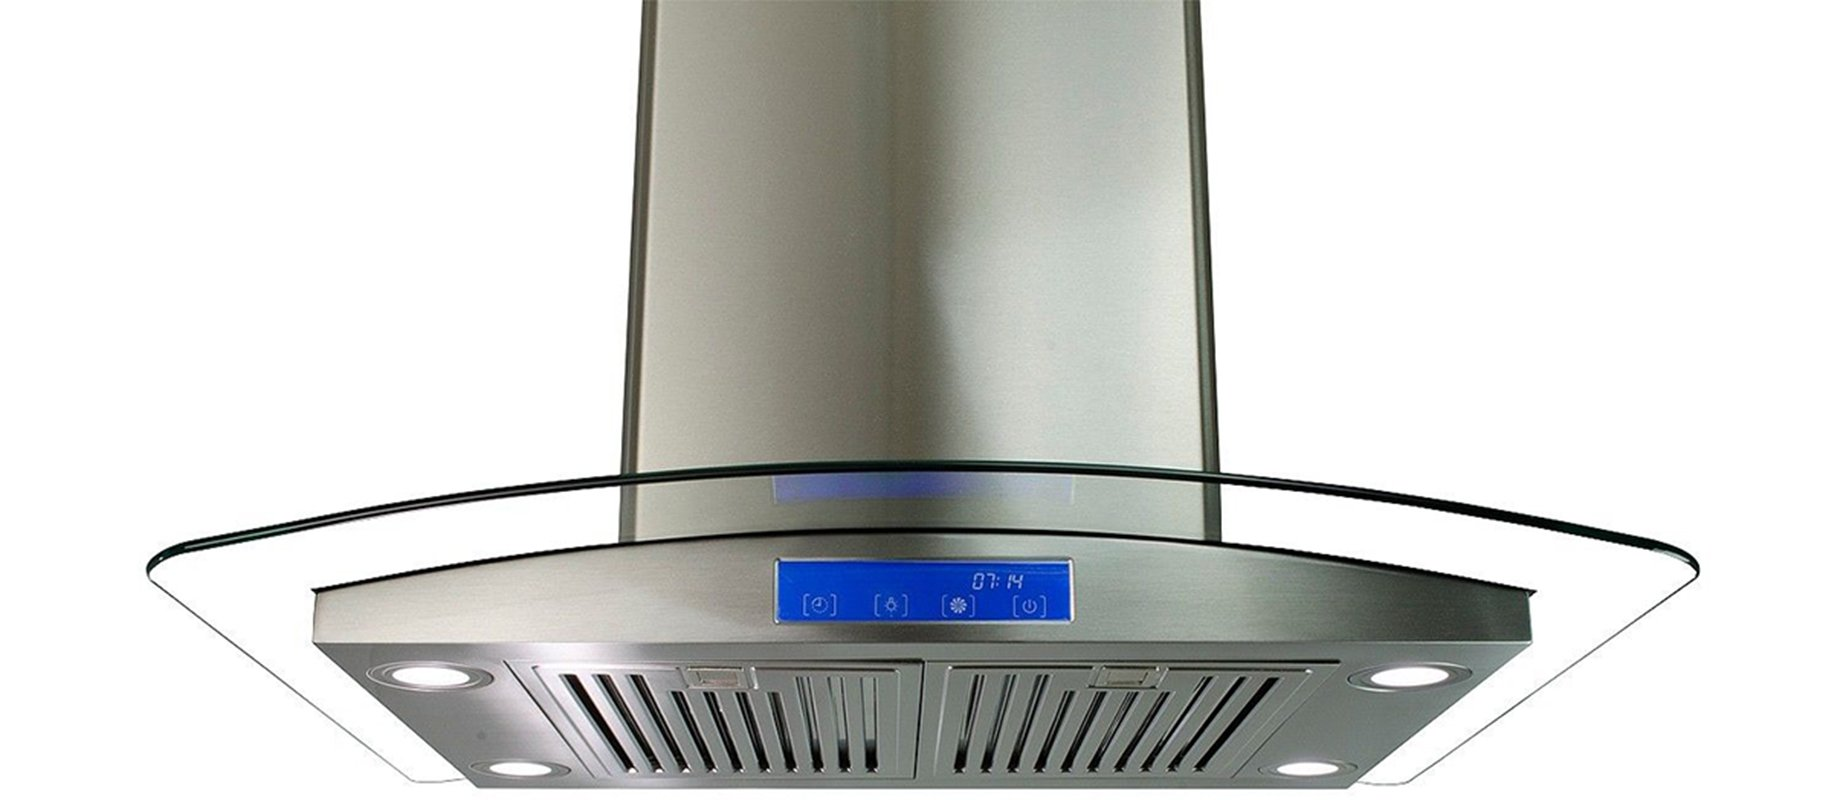 Cosmo 668ICS900 36 in. Island Mount Range Hood with Tempered Glass Visor, Soft Touch Controls, LED Lighting and Permanent Filters